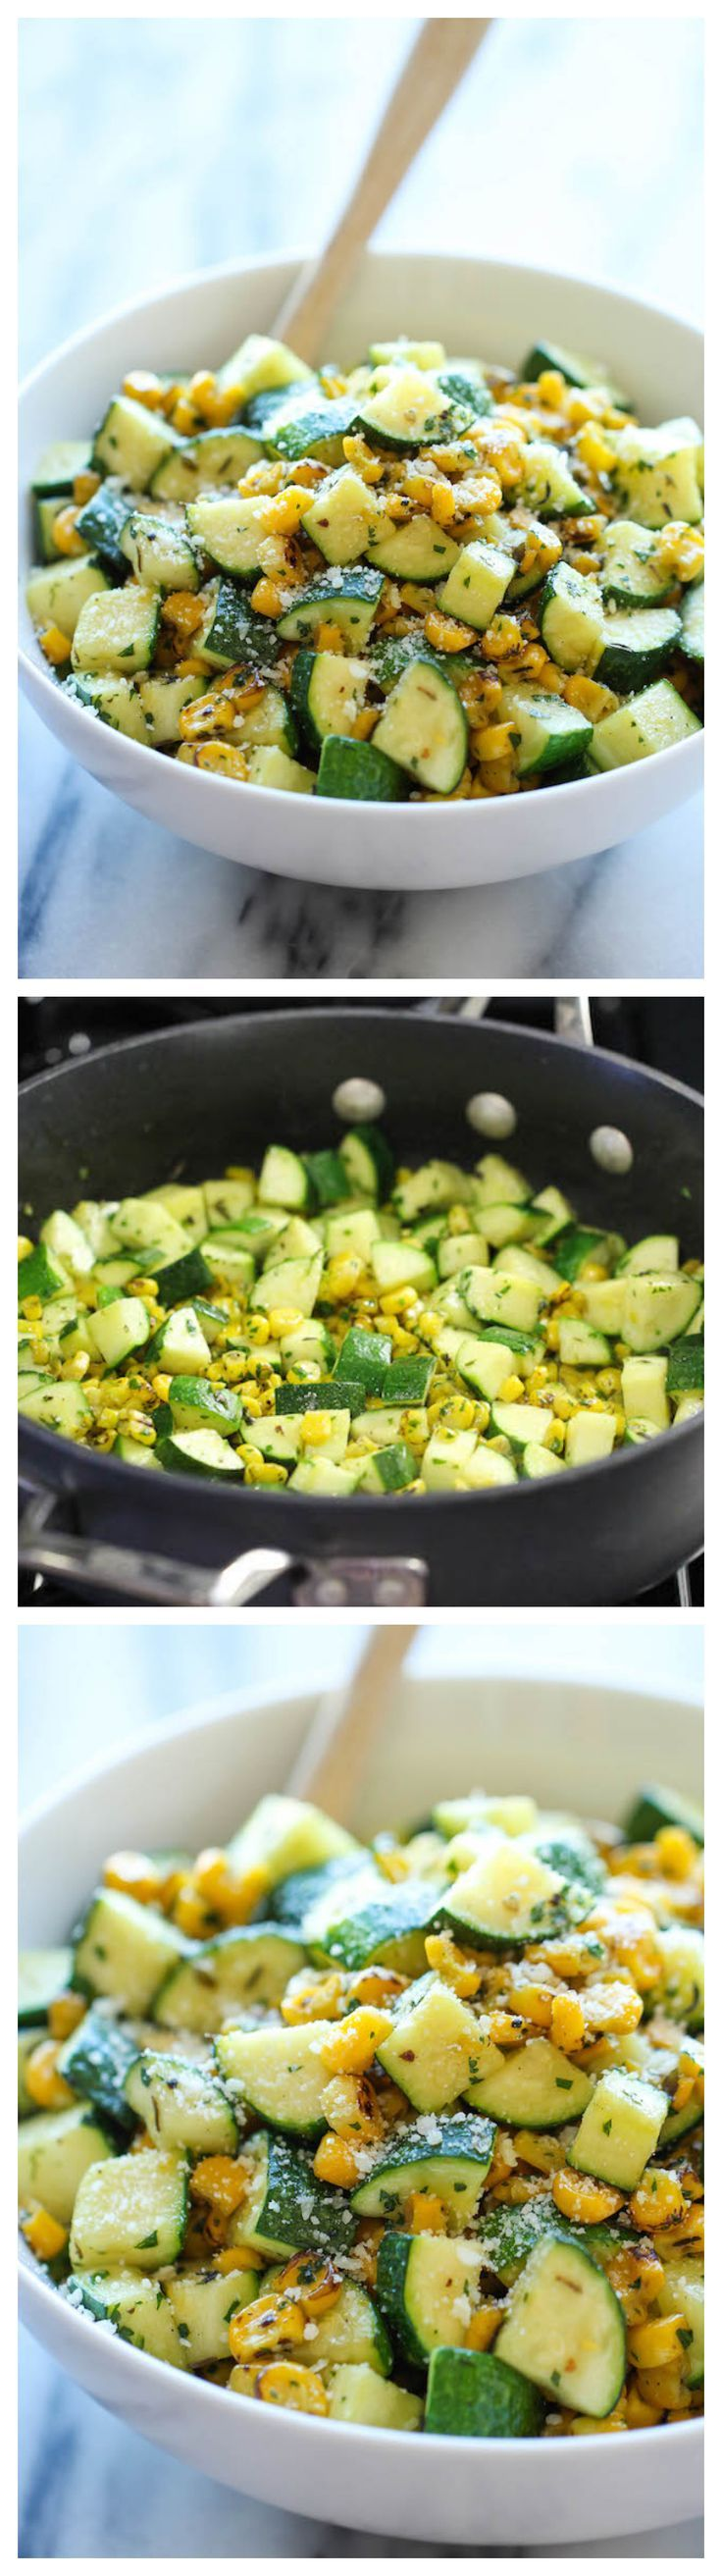 chunky sterling silver rings Parmesan Zucchini and Corn - A healthy 10 minute side dish to dress up any meal. It's so simple yet full of flavor!